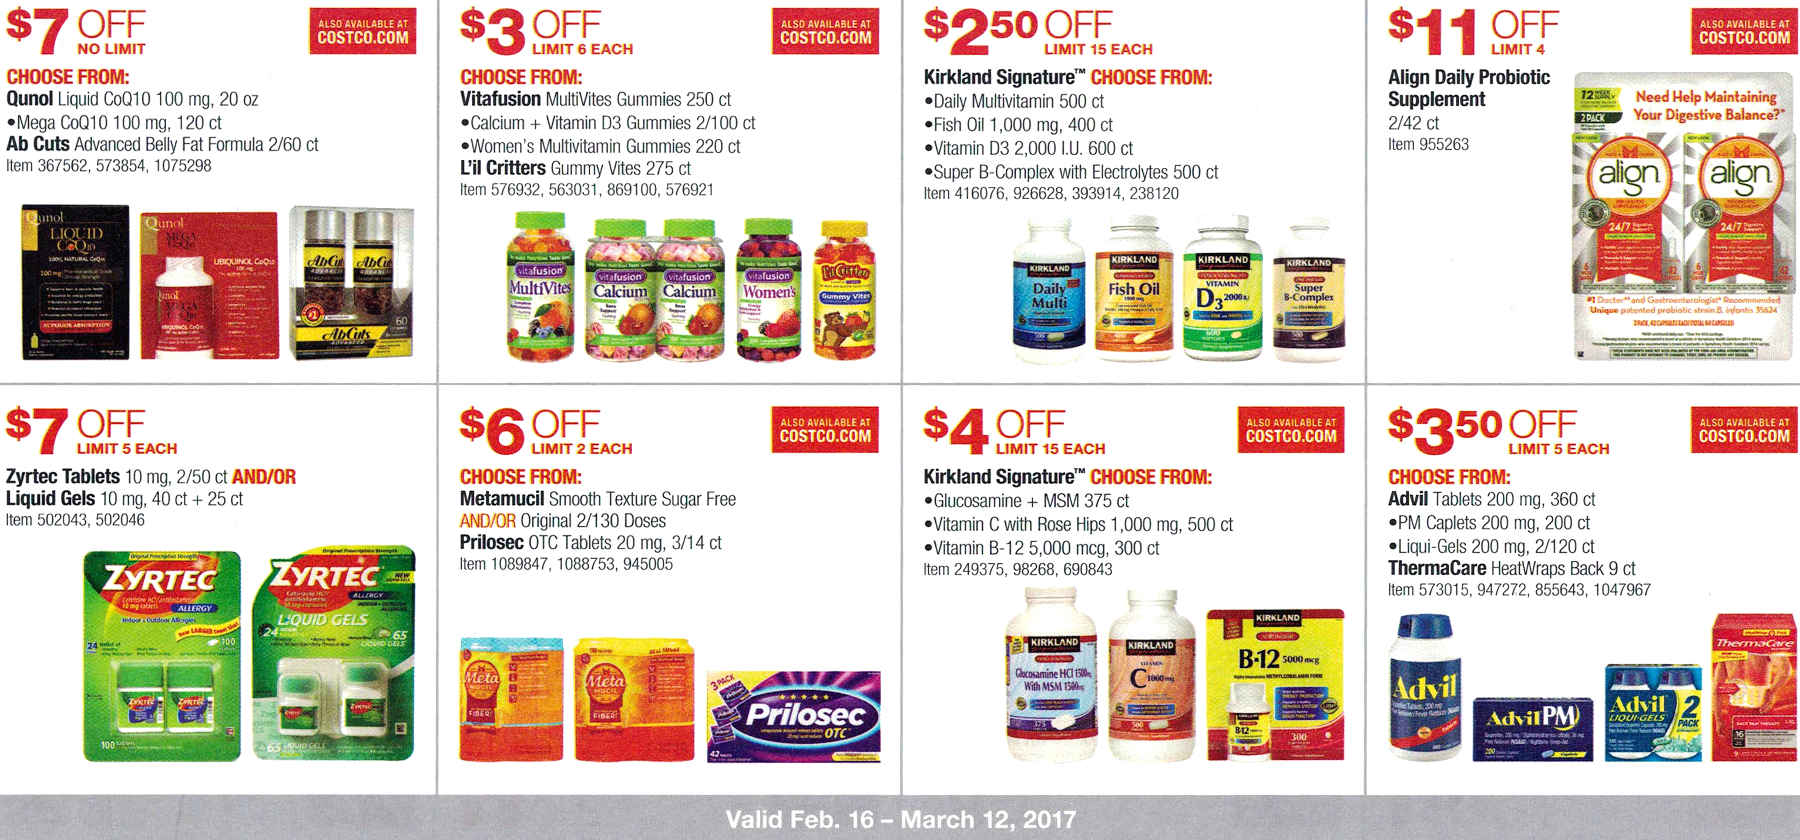 February 2017 Costco Coupon Book Page 11